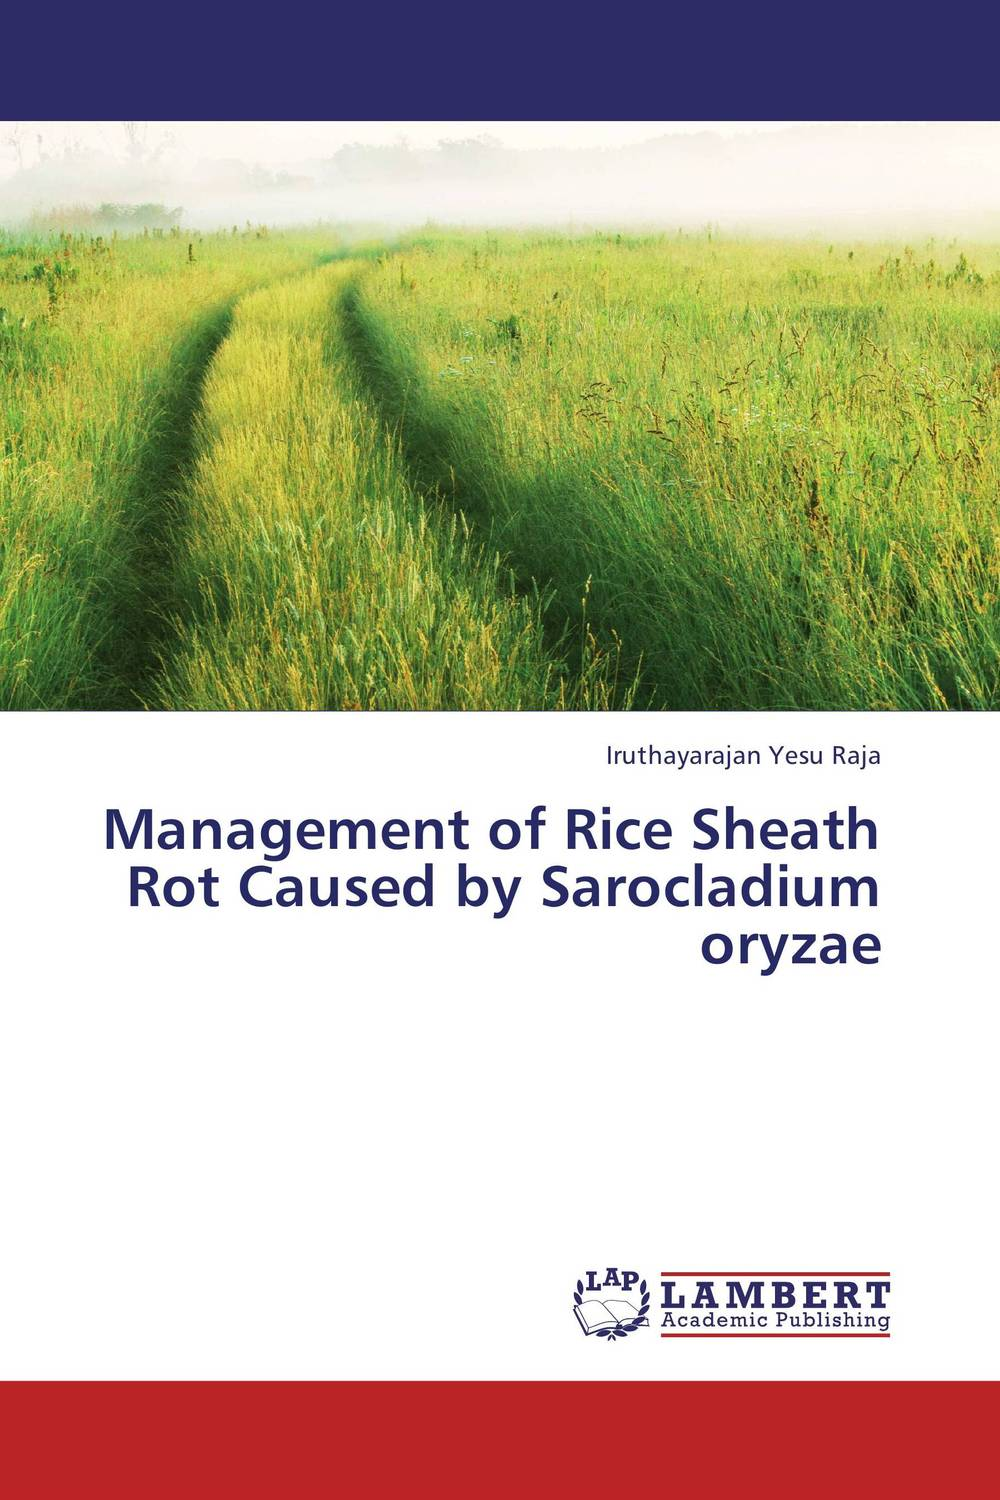 Management of Rice Sheath Rot Caused by  Sarocladium oryzae k r k naidu a v ramana and r veeraraghavaiah common vetch management in rice fallow blackgram